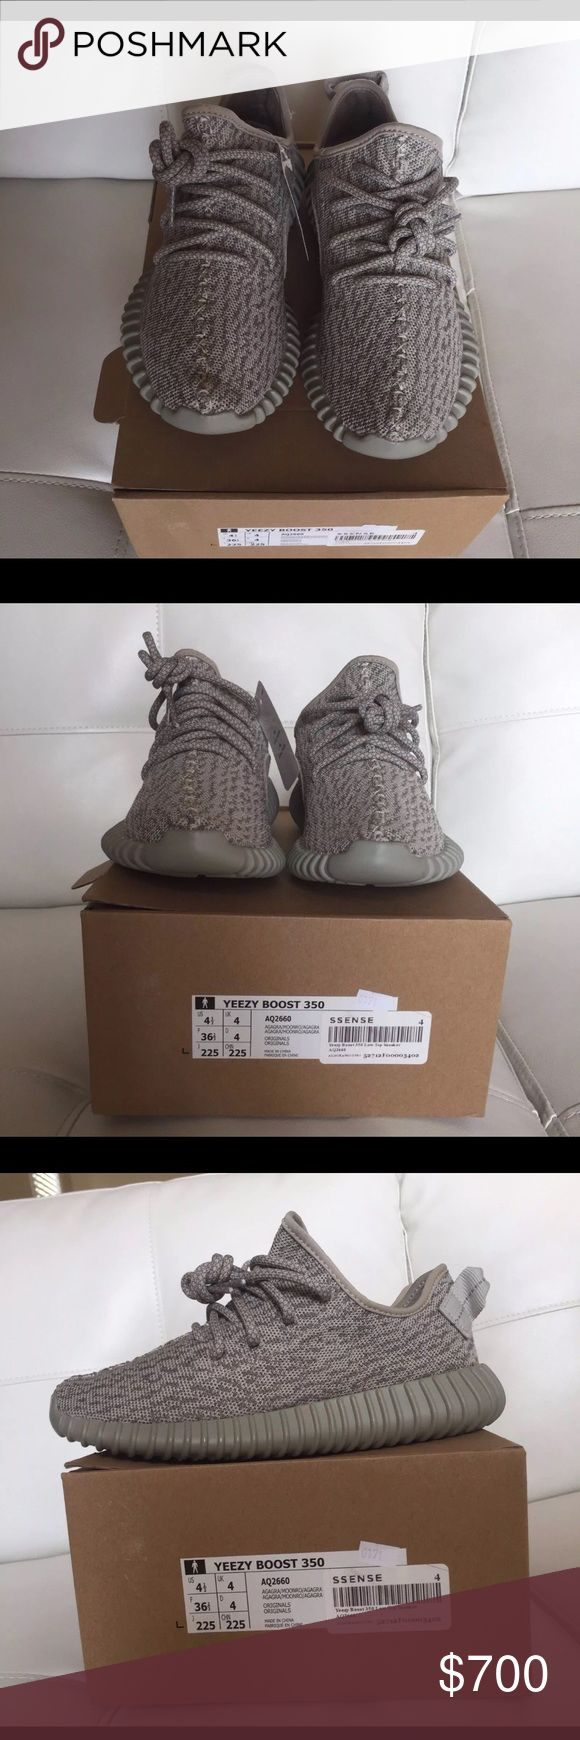 Yeezy Boost 350 MoonRock Moon Rock VERY FEW sizes still remaining available for Purchase and PREORDER Text or call me 248-923-6076 regarding prices and sizes. 110% Authentic. Never EVEN TRIED ON!! Comes with box and original everything. Follow me On Instagram @SneakerIcon_ Adidas Shoes Sneakers